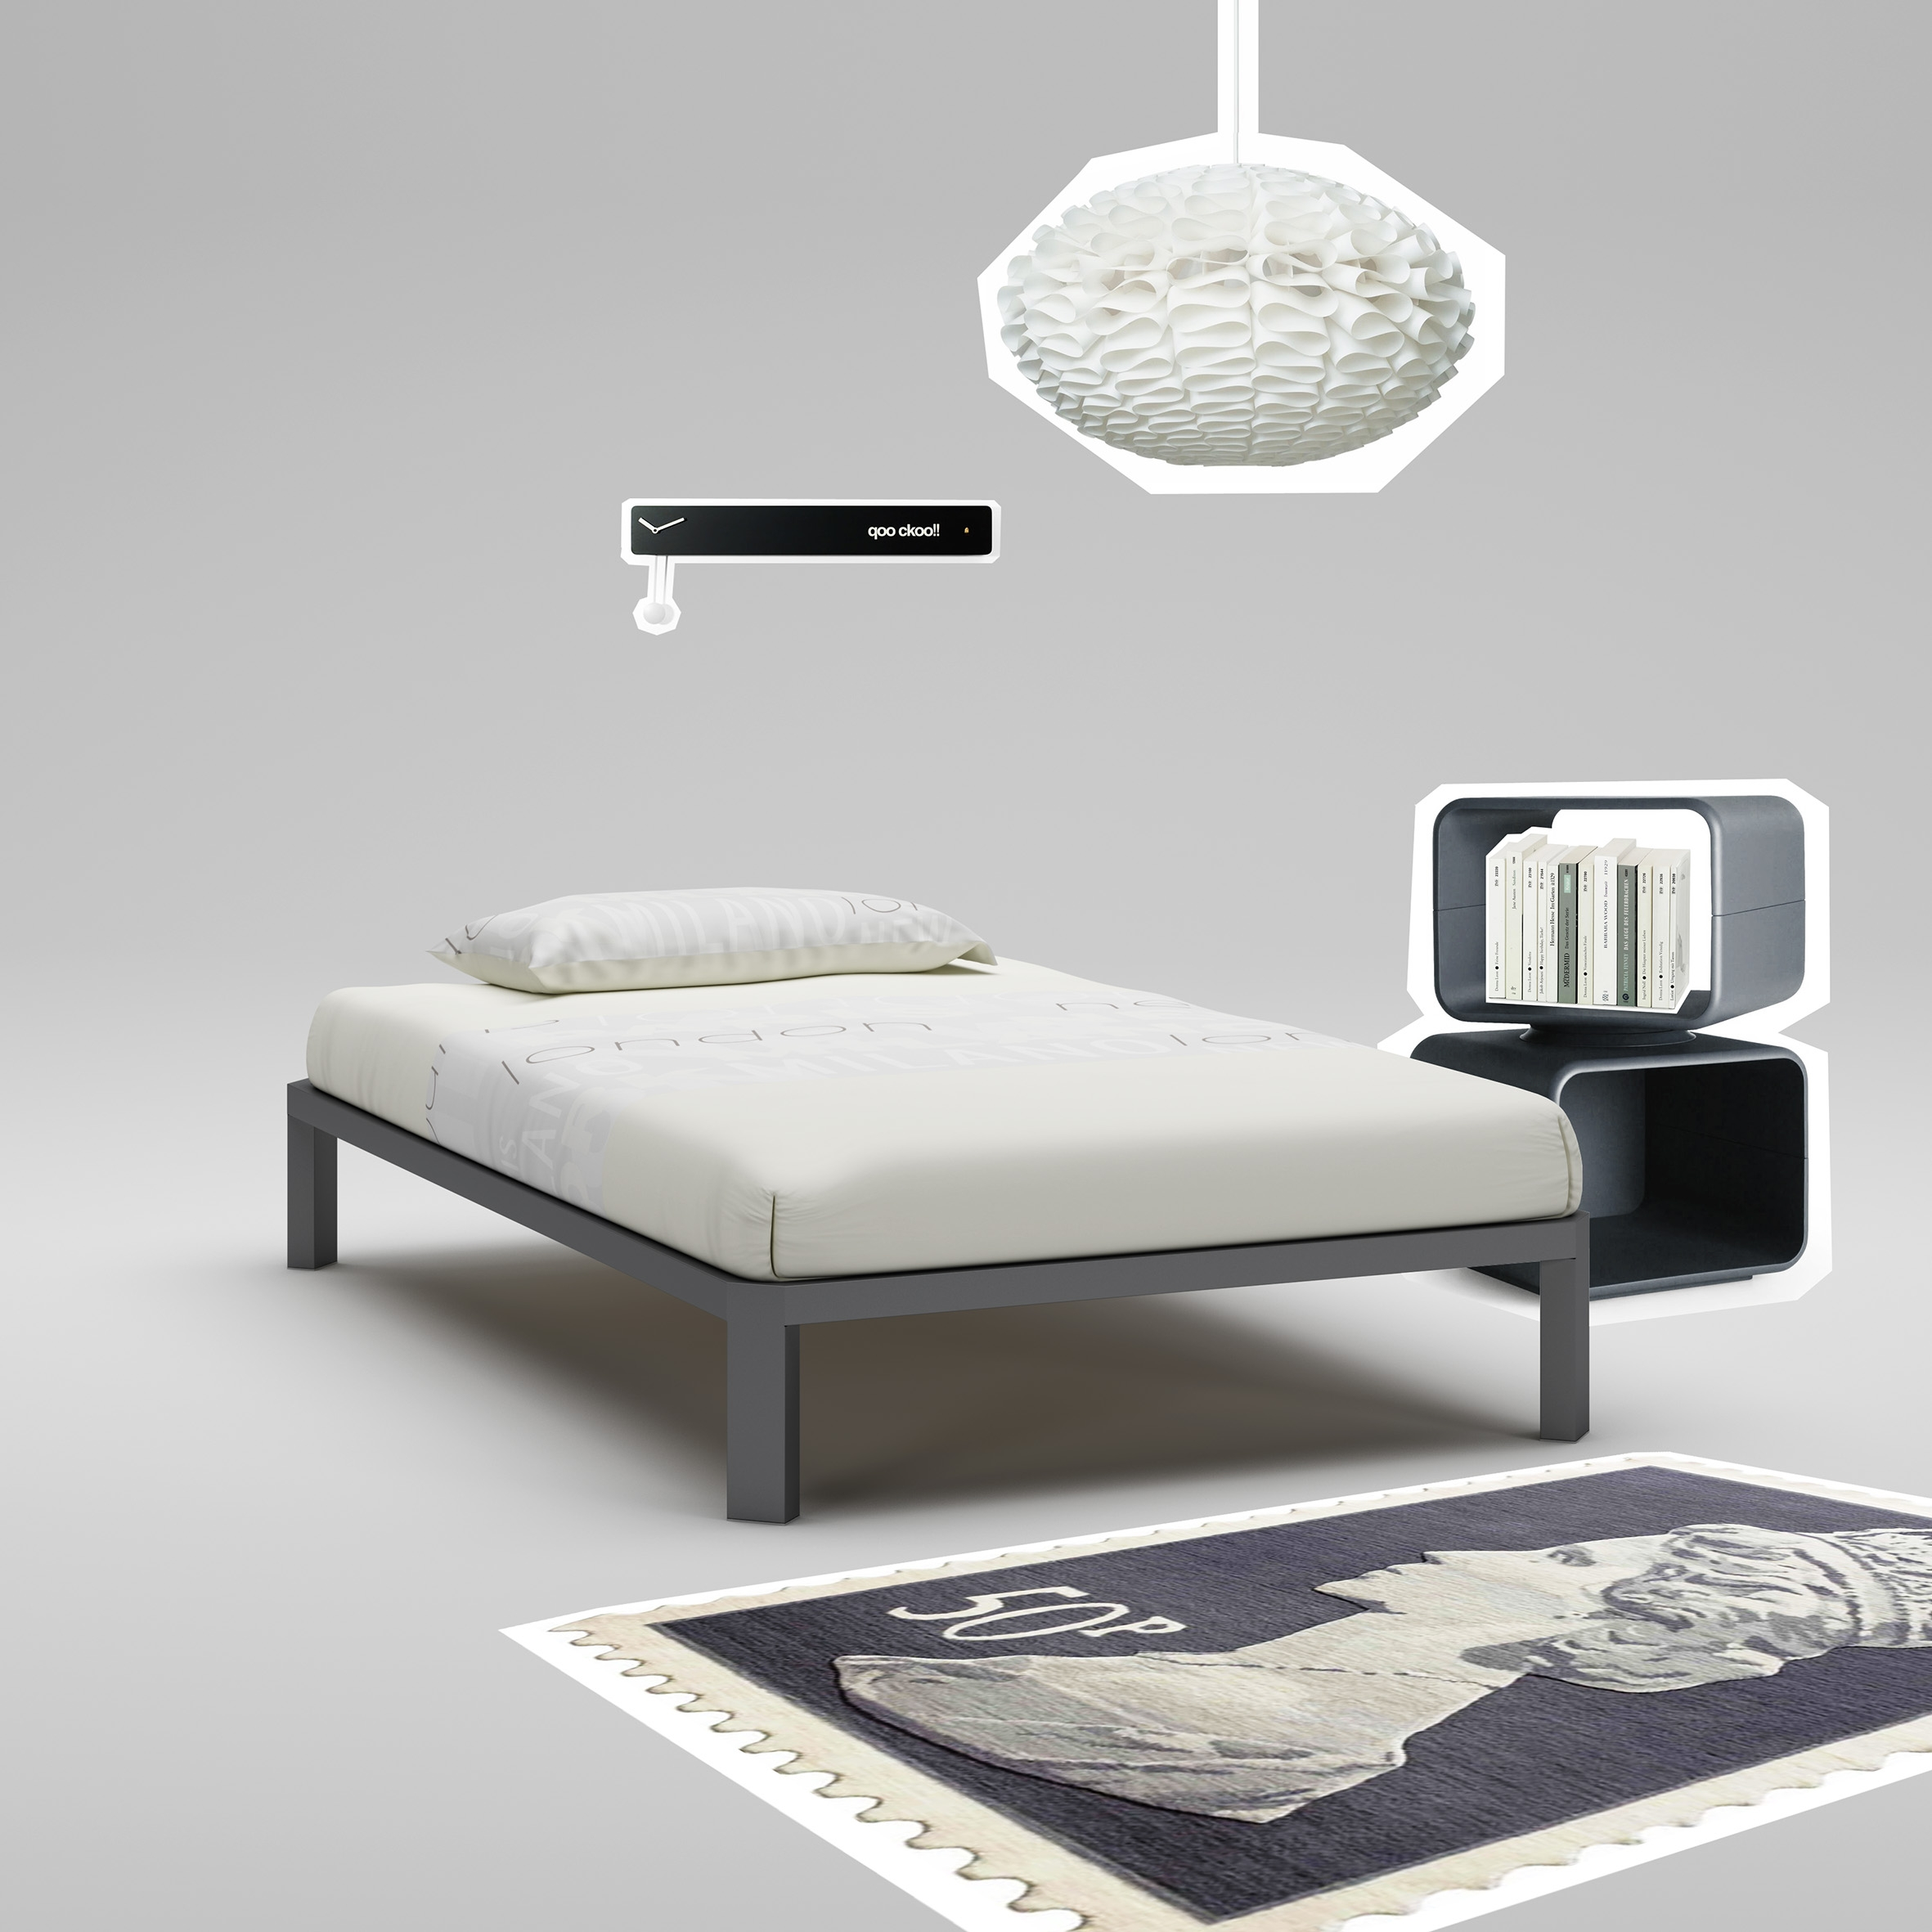 lit ado couleur graphite moderne et fun moretti compact so nuit. Black Bedroom Furniture Sets. Home Design Ideas